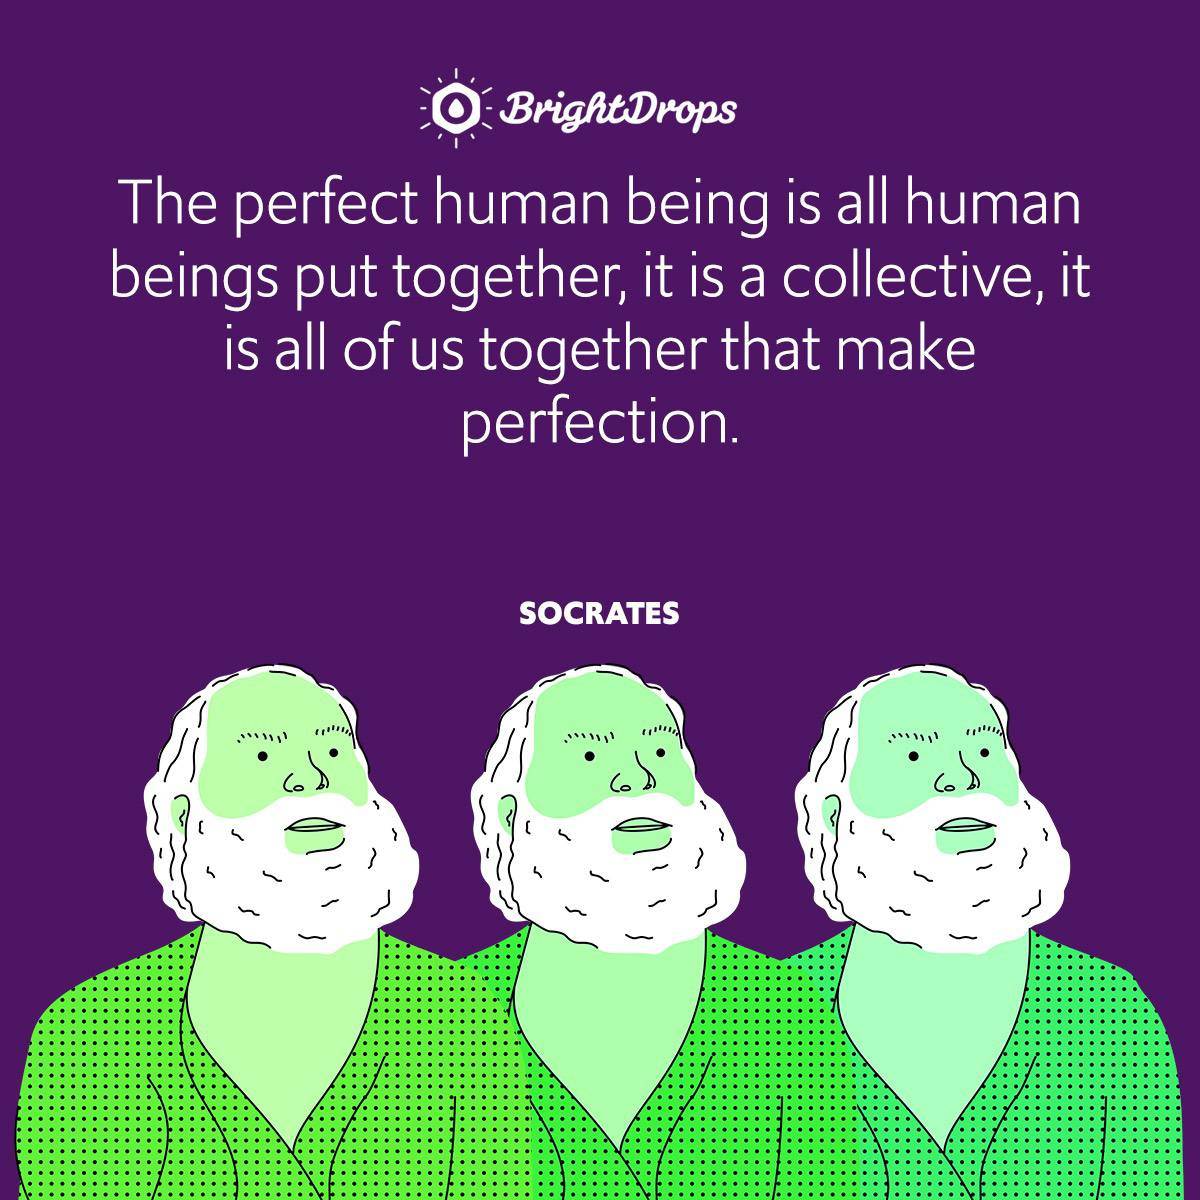 The perfect human being is all human beings put together, it is a collective, it is all of us together that make perfection.